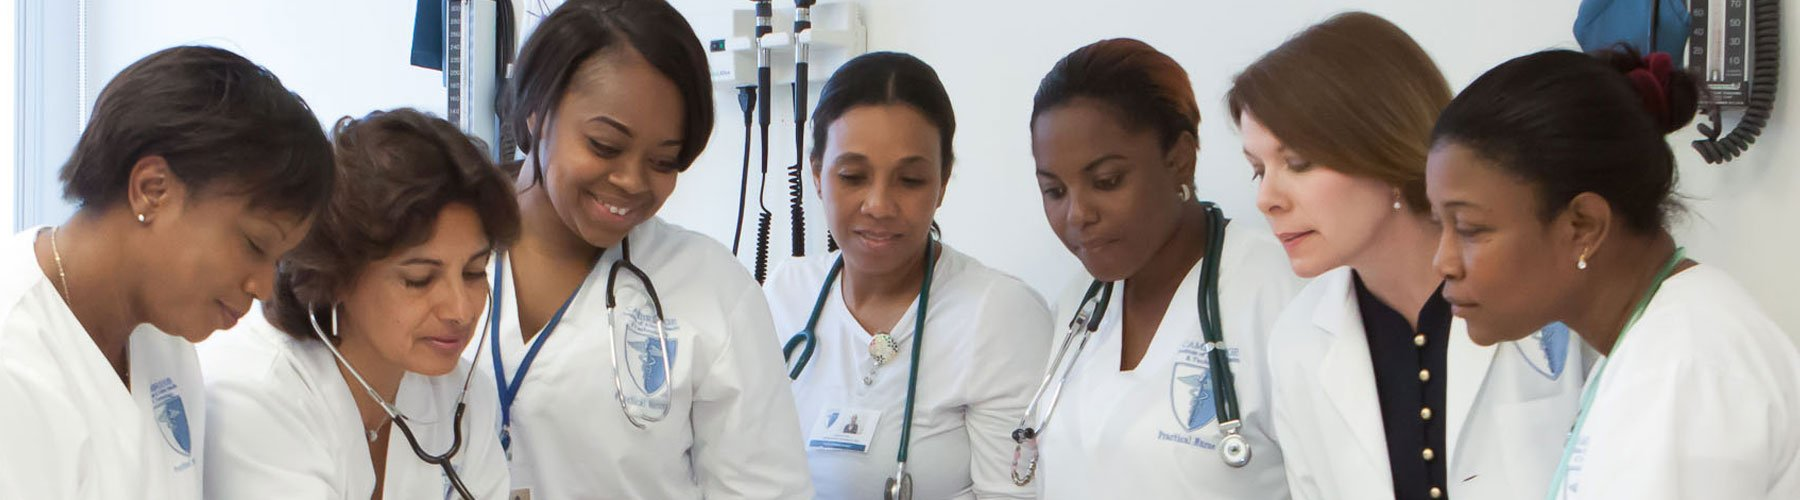 Practical Nurse Training at Cambridge Institute of Allied Health and Technology